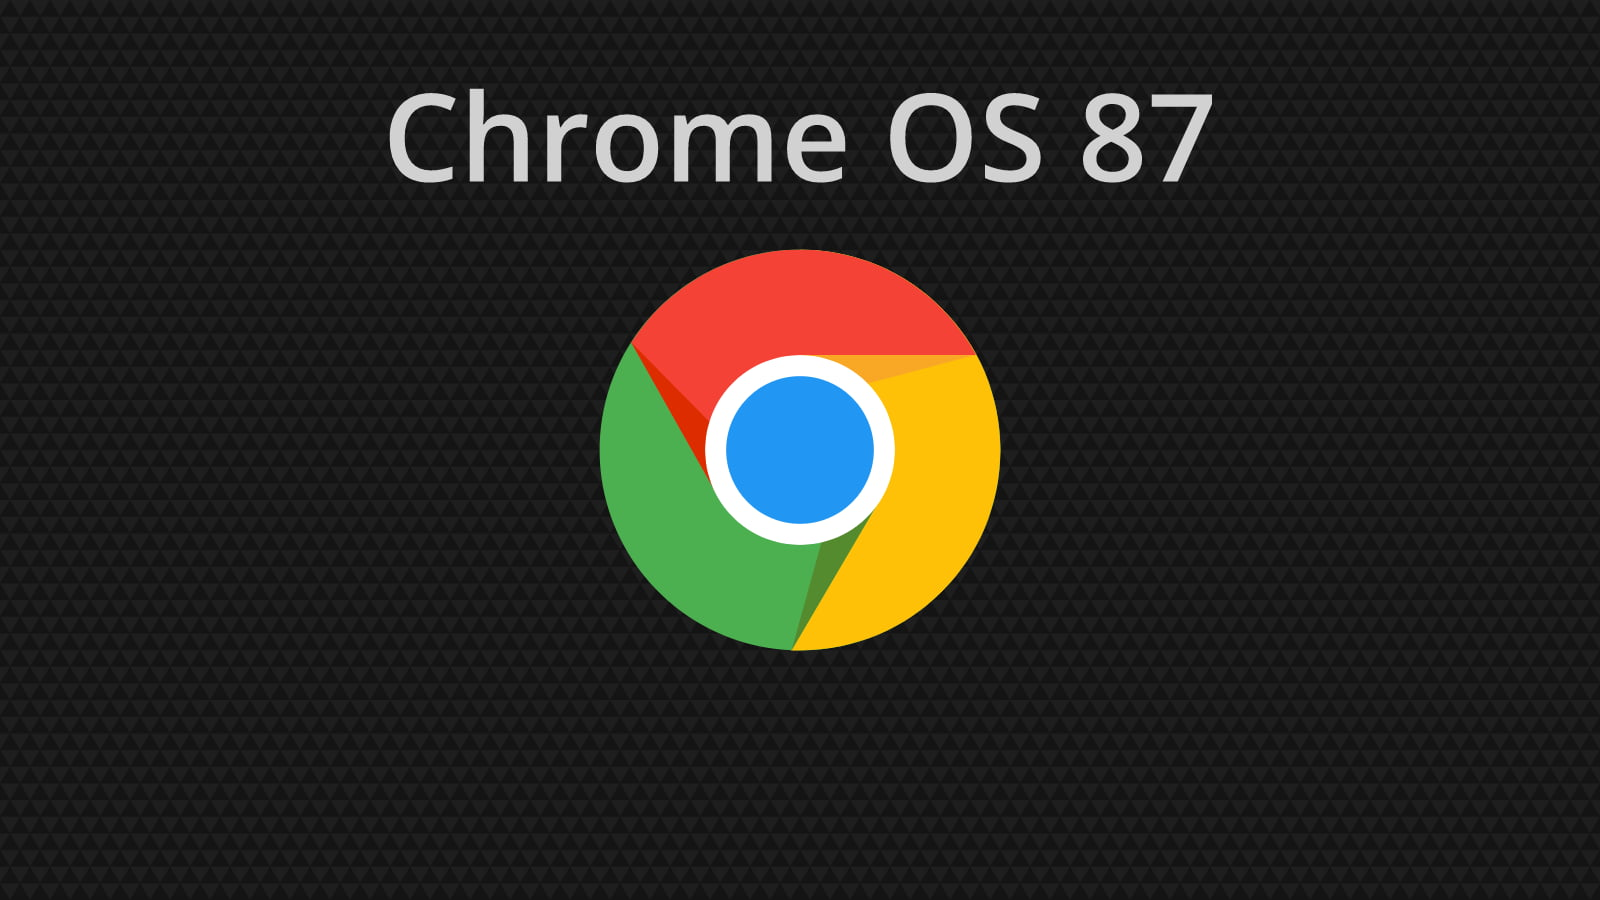 Chrome OS 87 is here with Tab Search, BT battery level and more